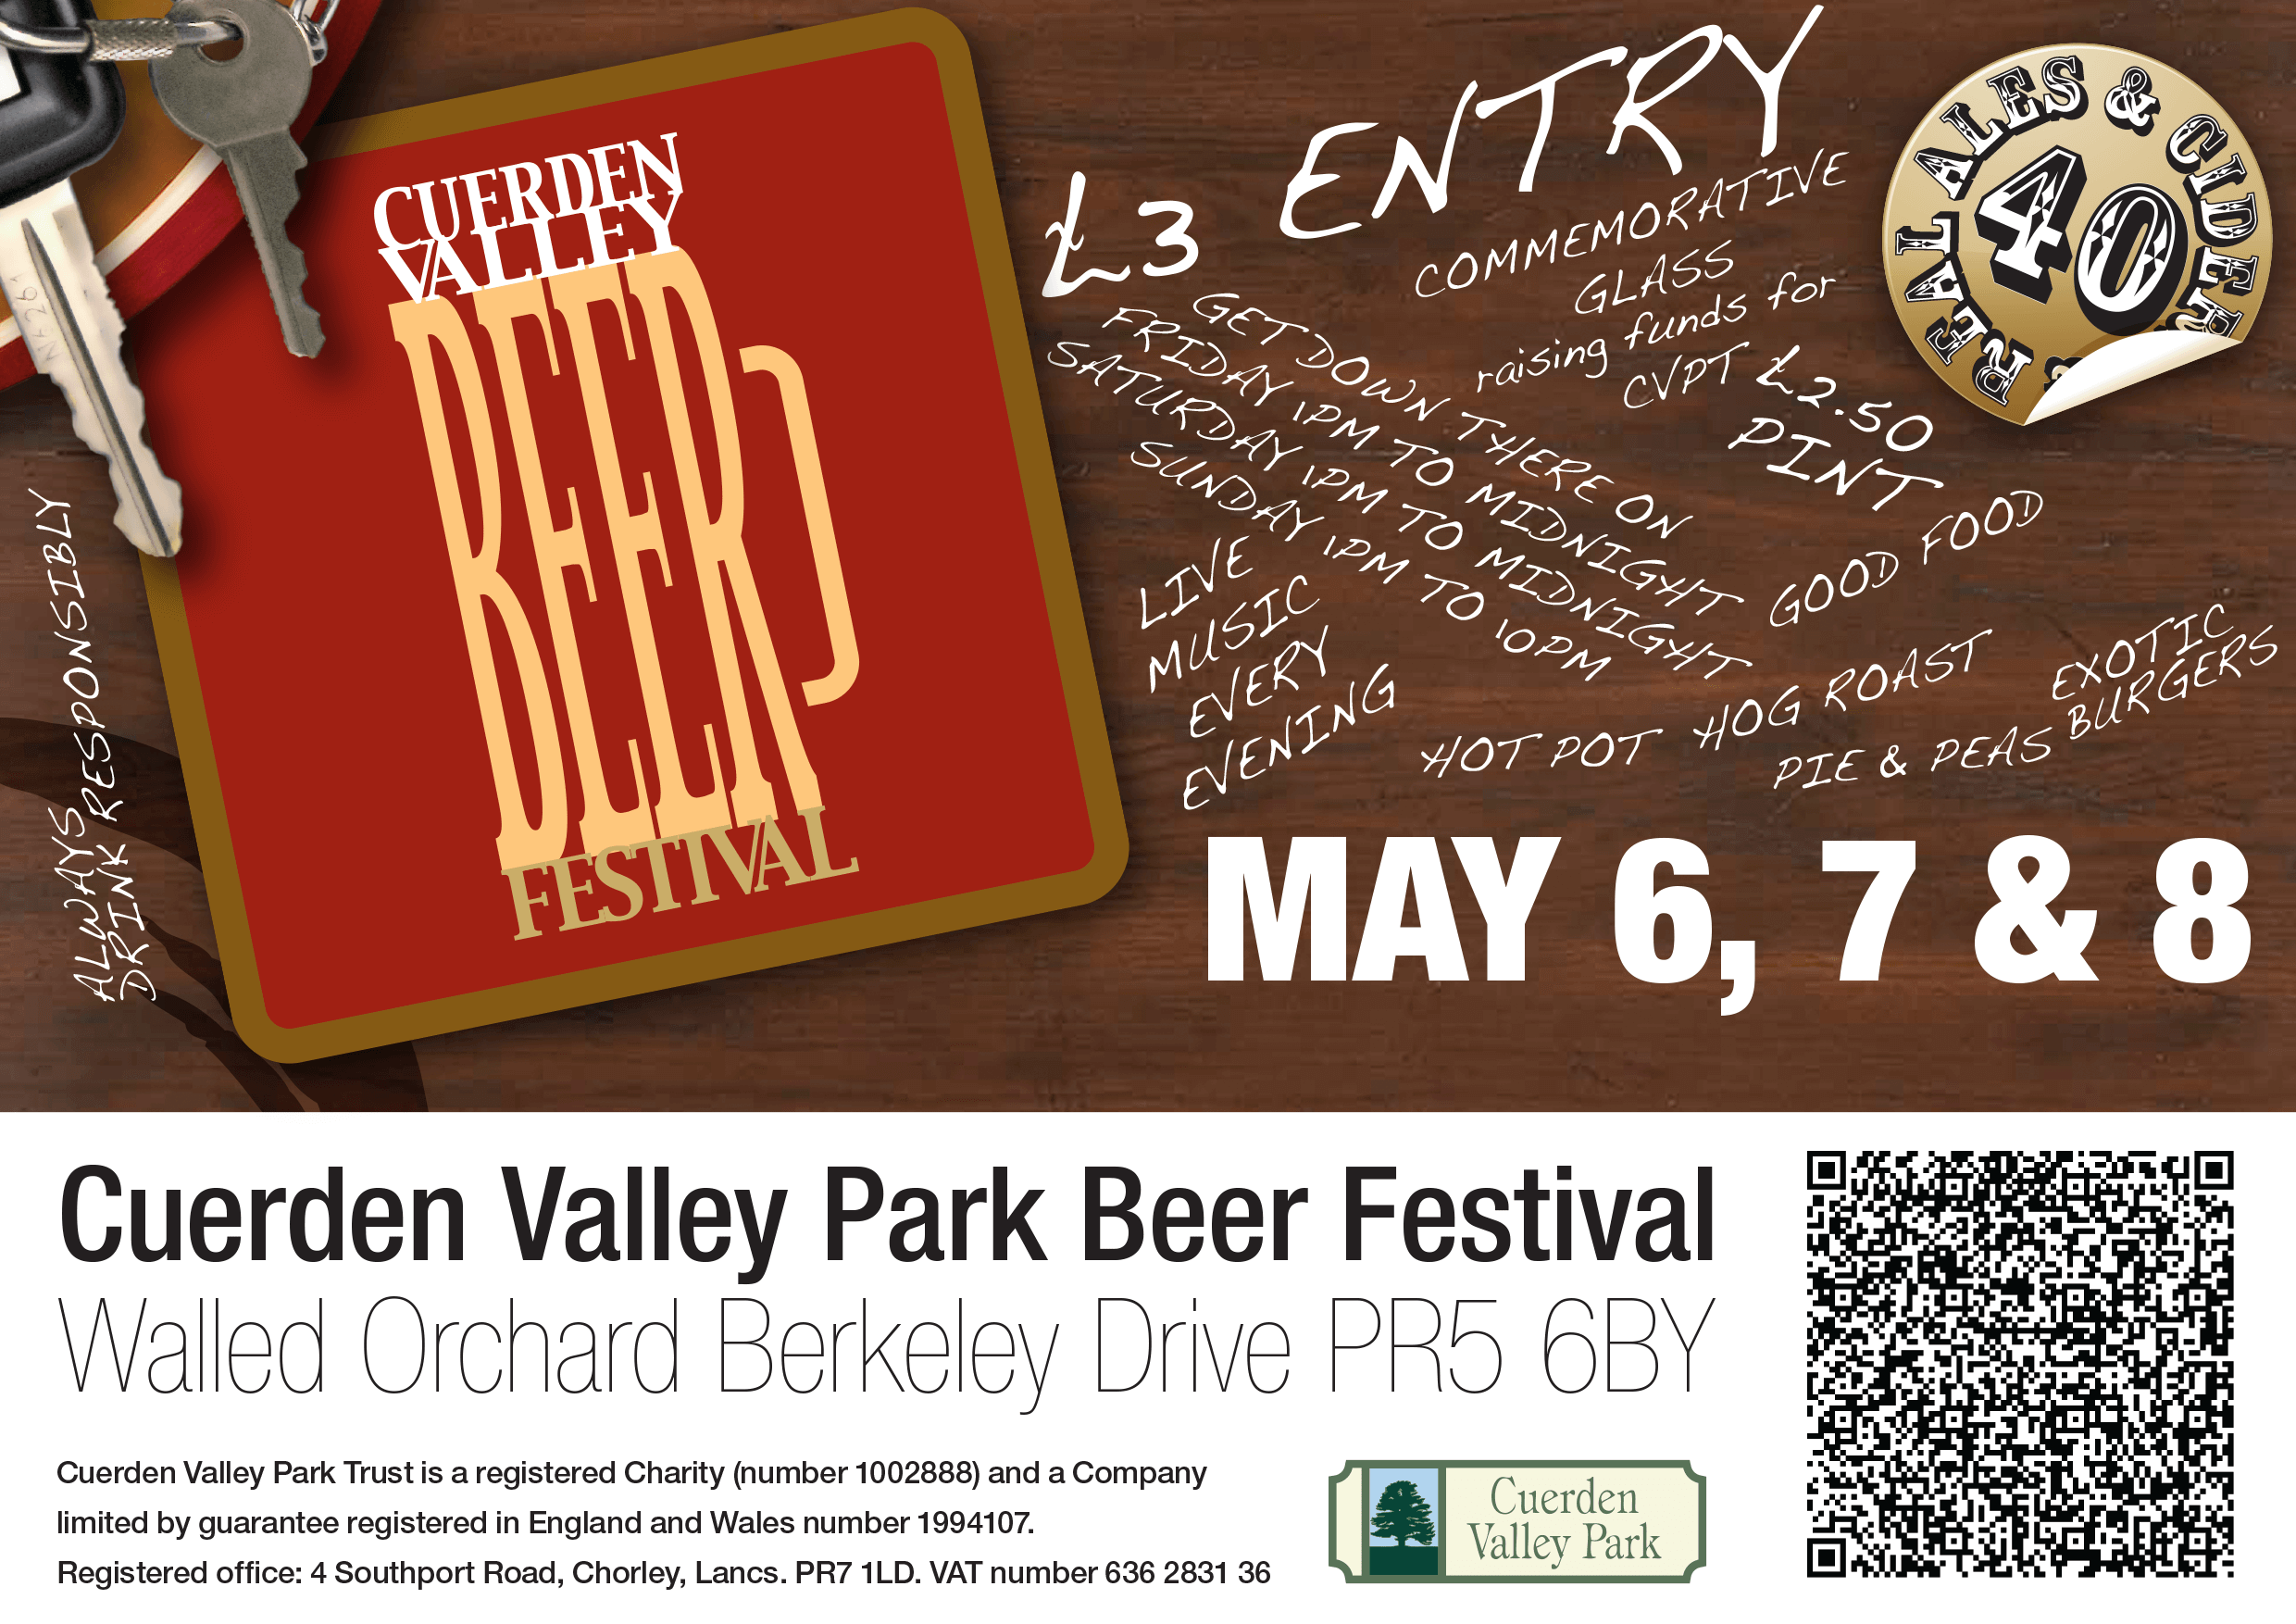 Cuerden Valley Park Beer Festival 2010 Flier